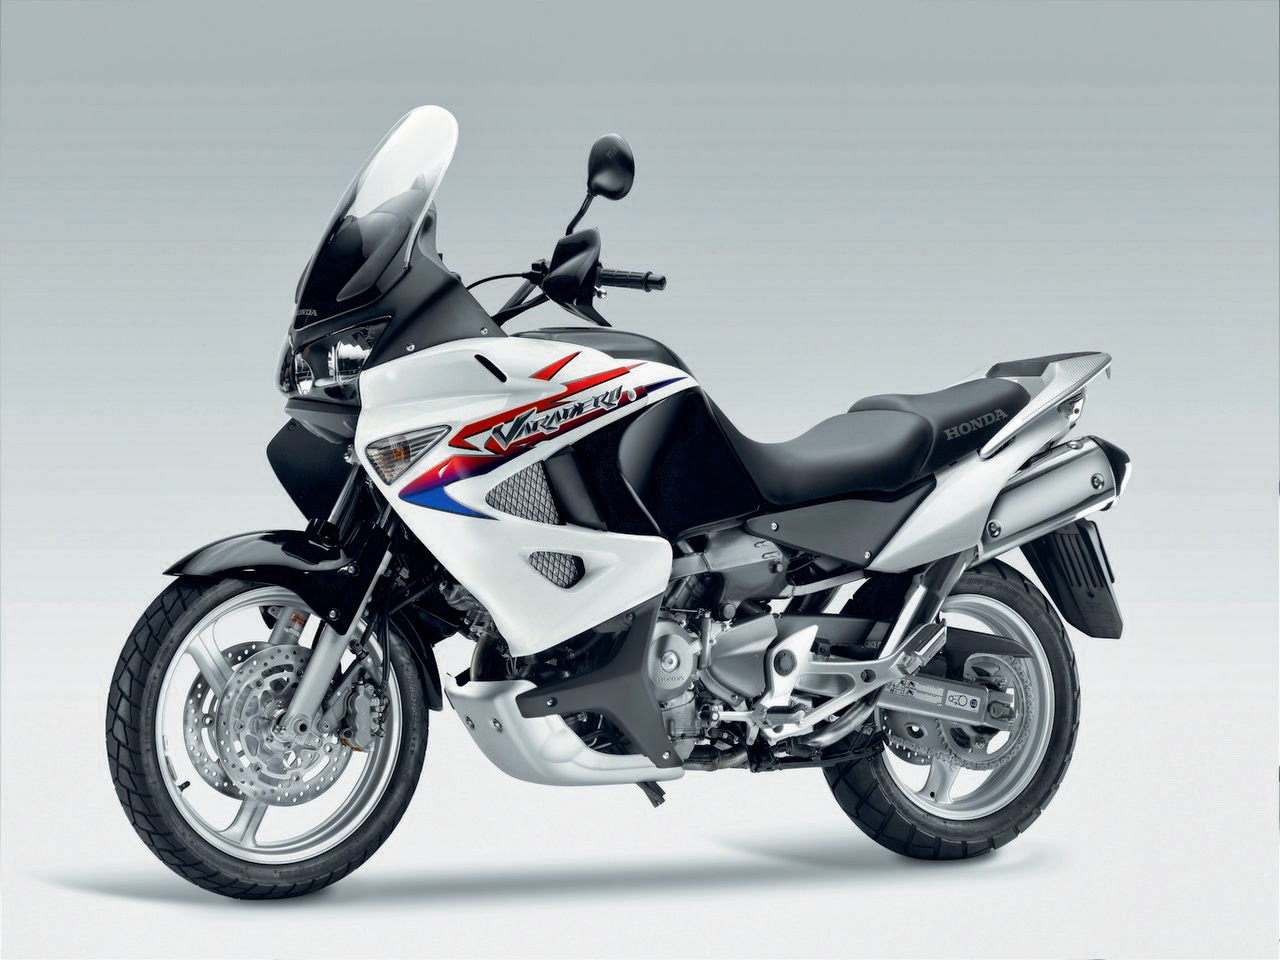 Honda Varadero Latest Motorcycle Models